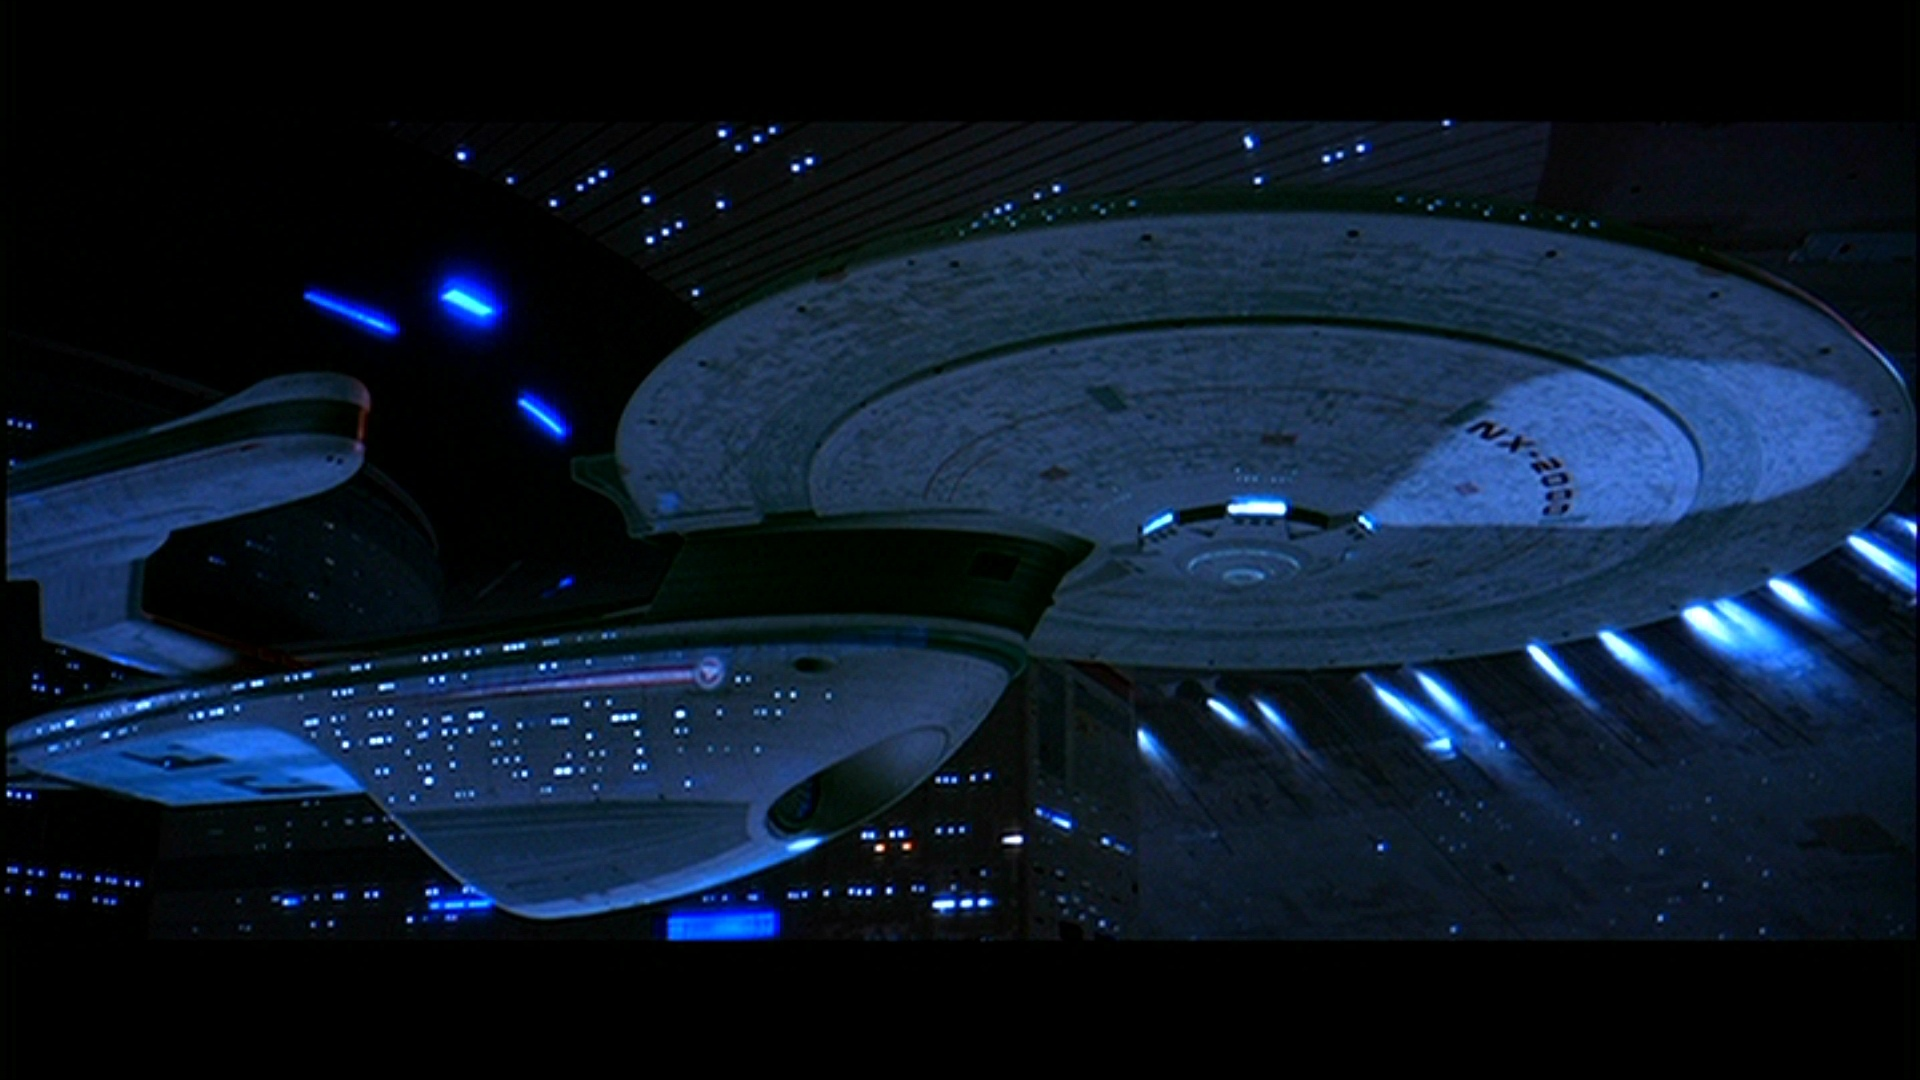 Star Trek III The Search for Spock Movie Wallpapers 1920x1080